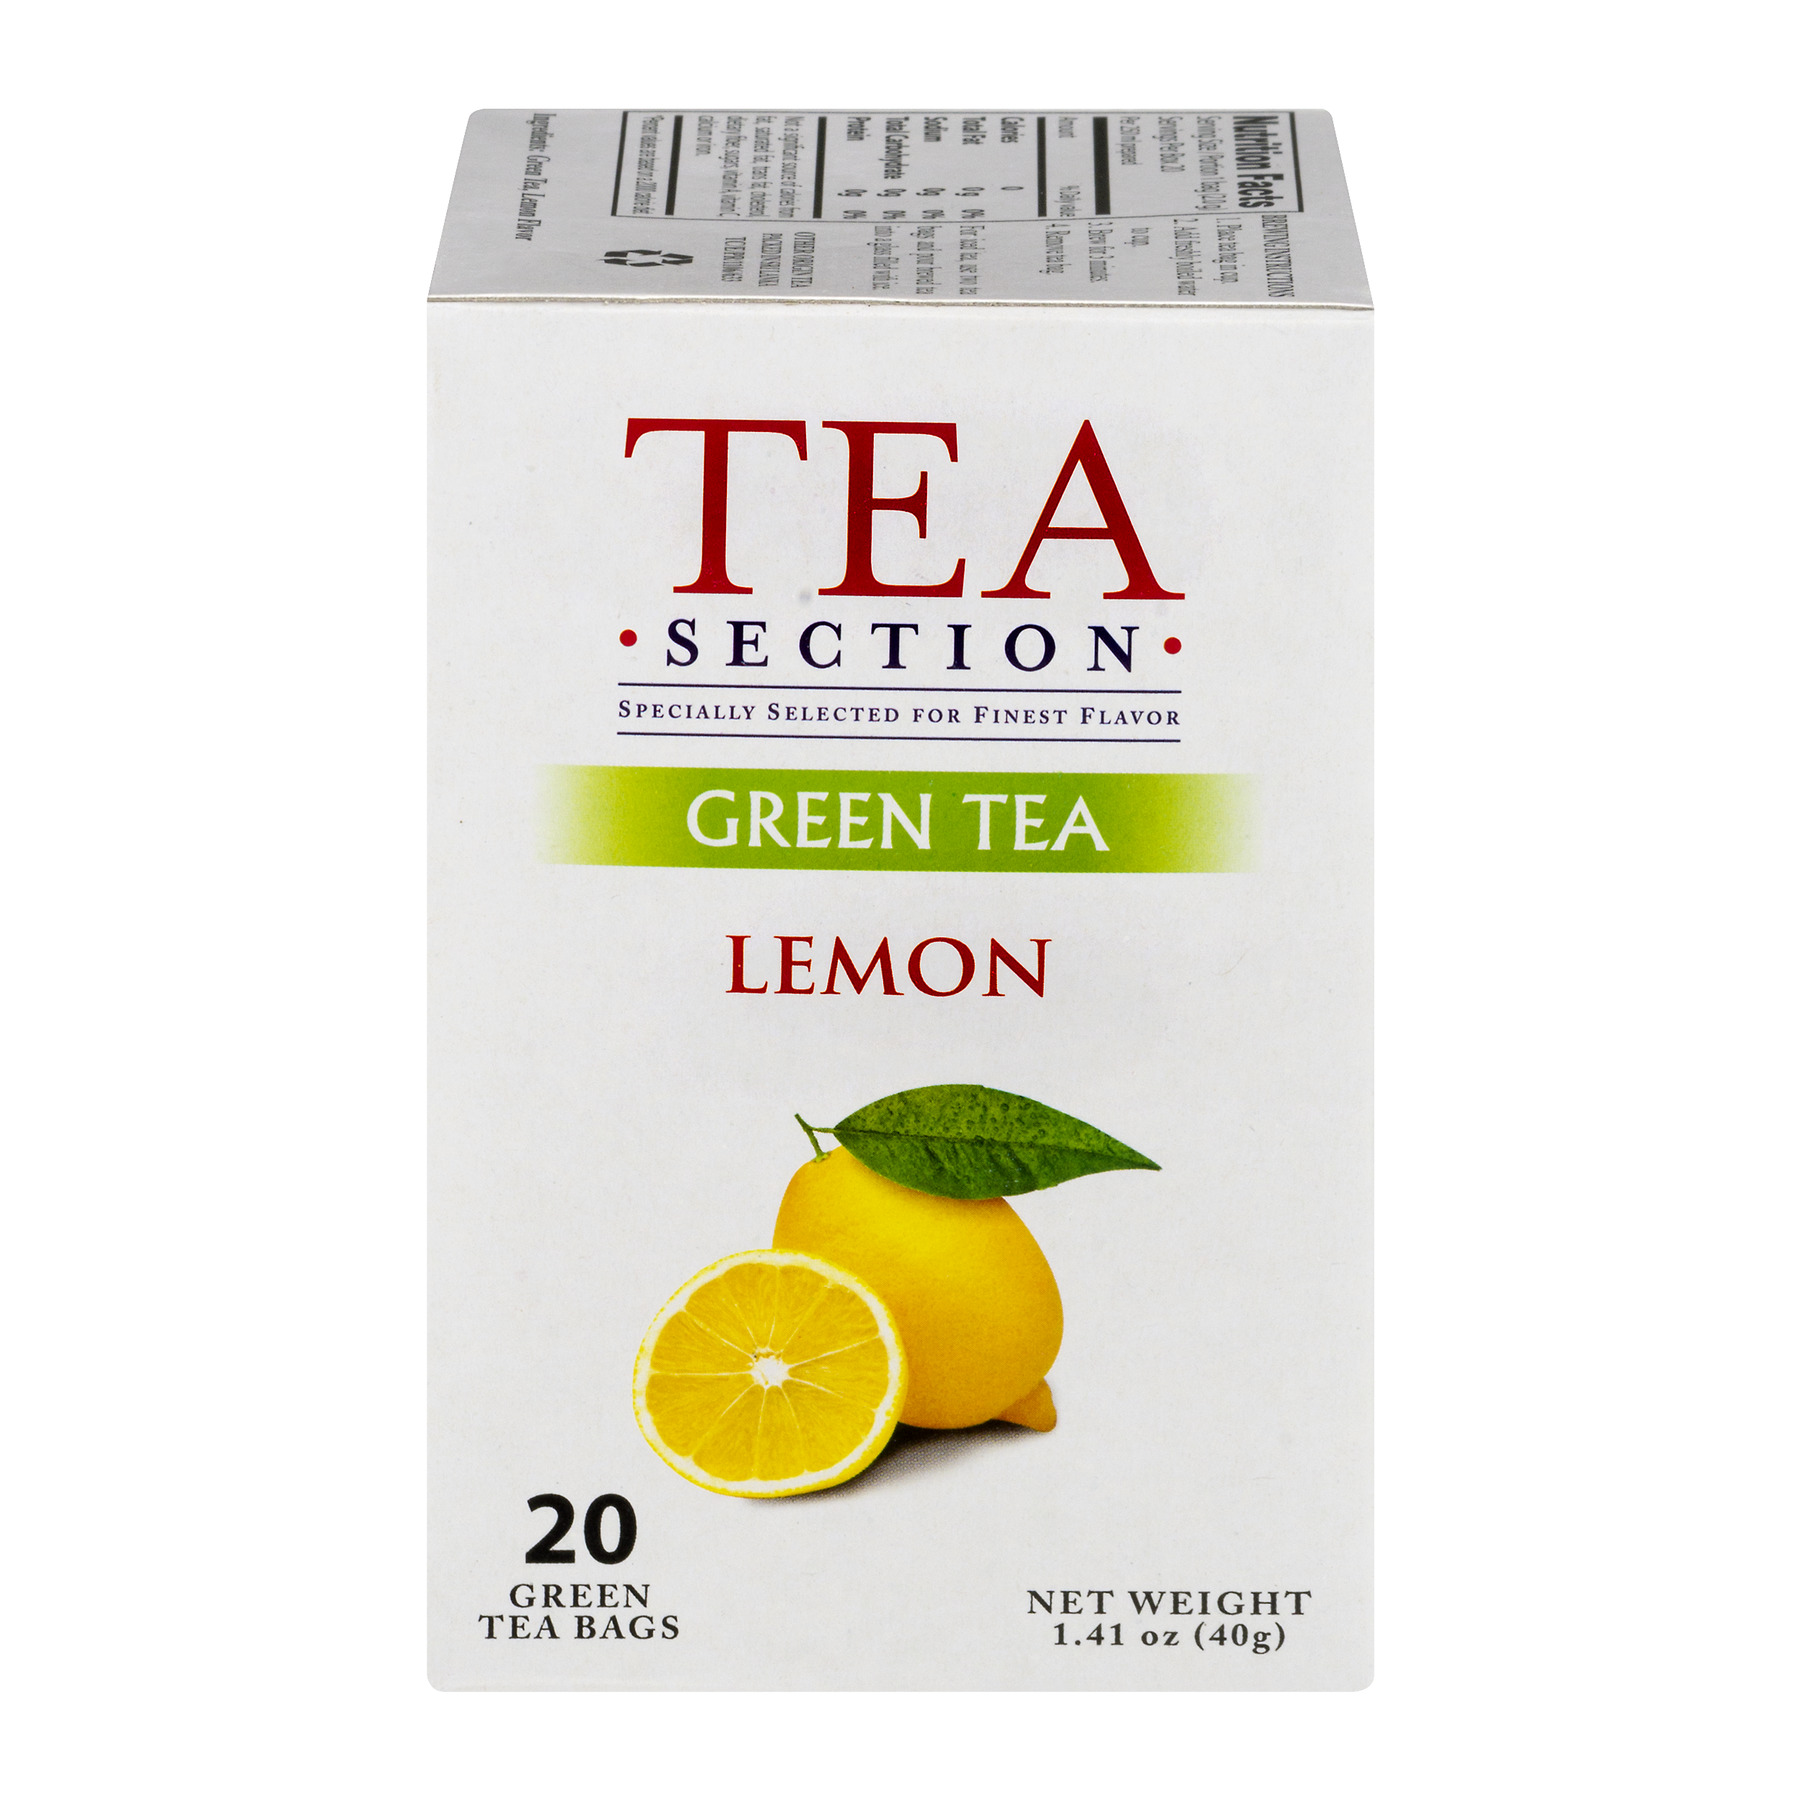 Tea Section Lemon Green Tea Bags, 20 count, 1.41 oz